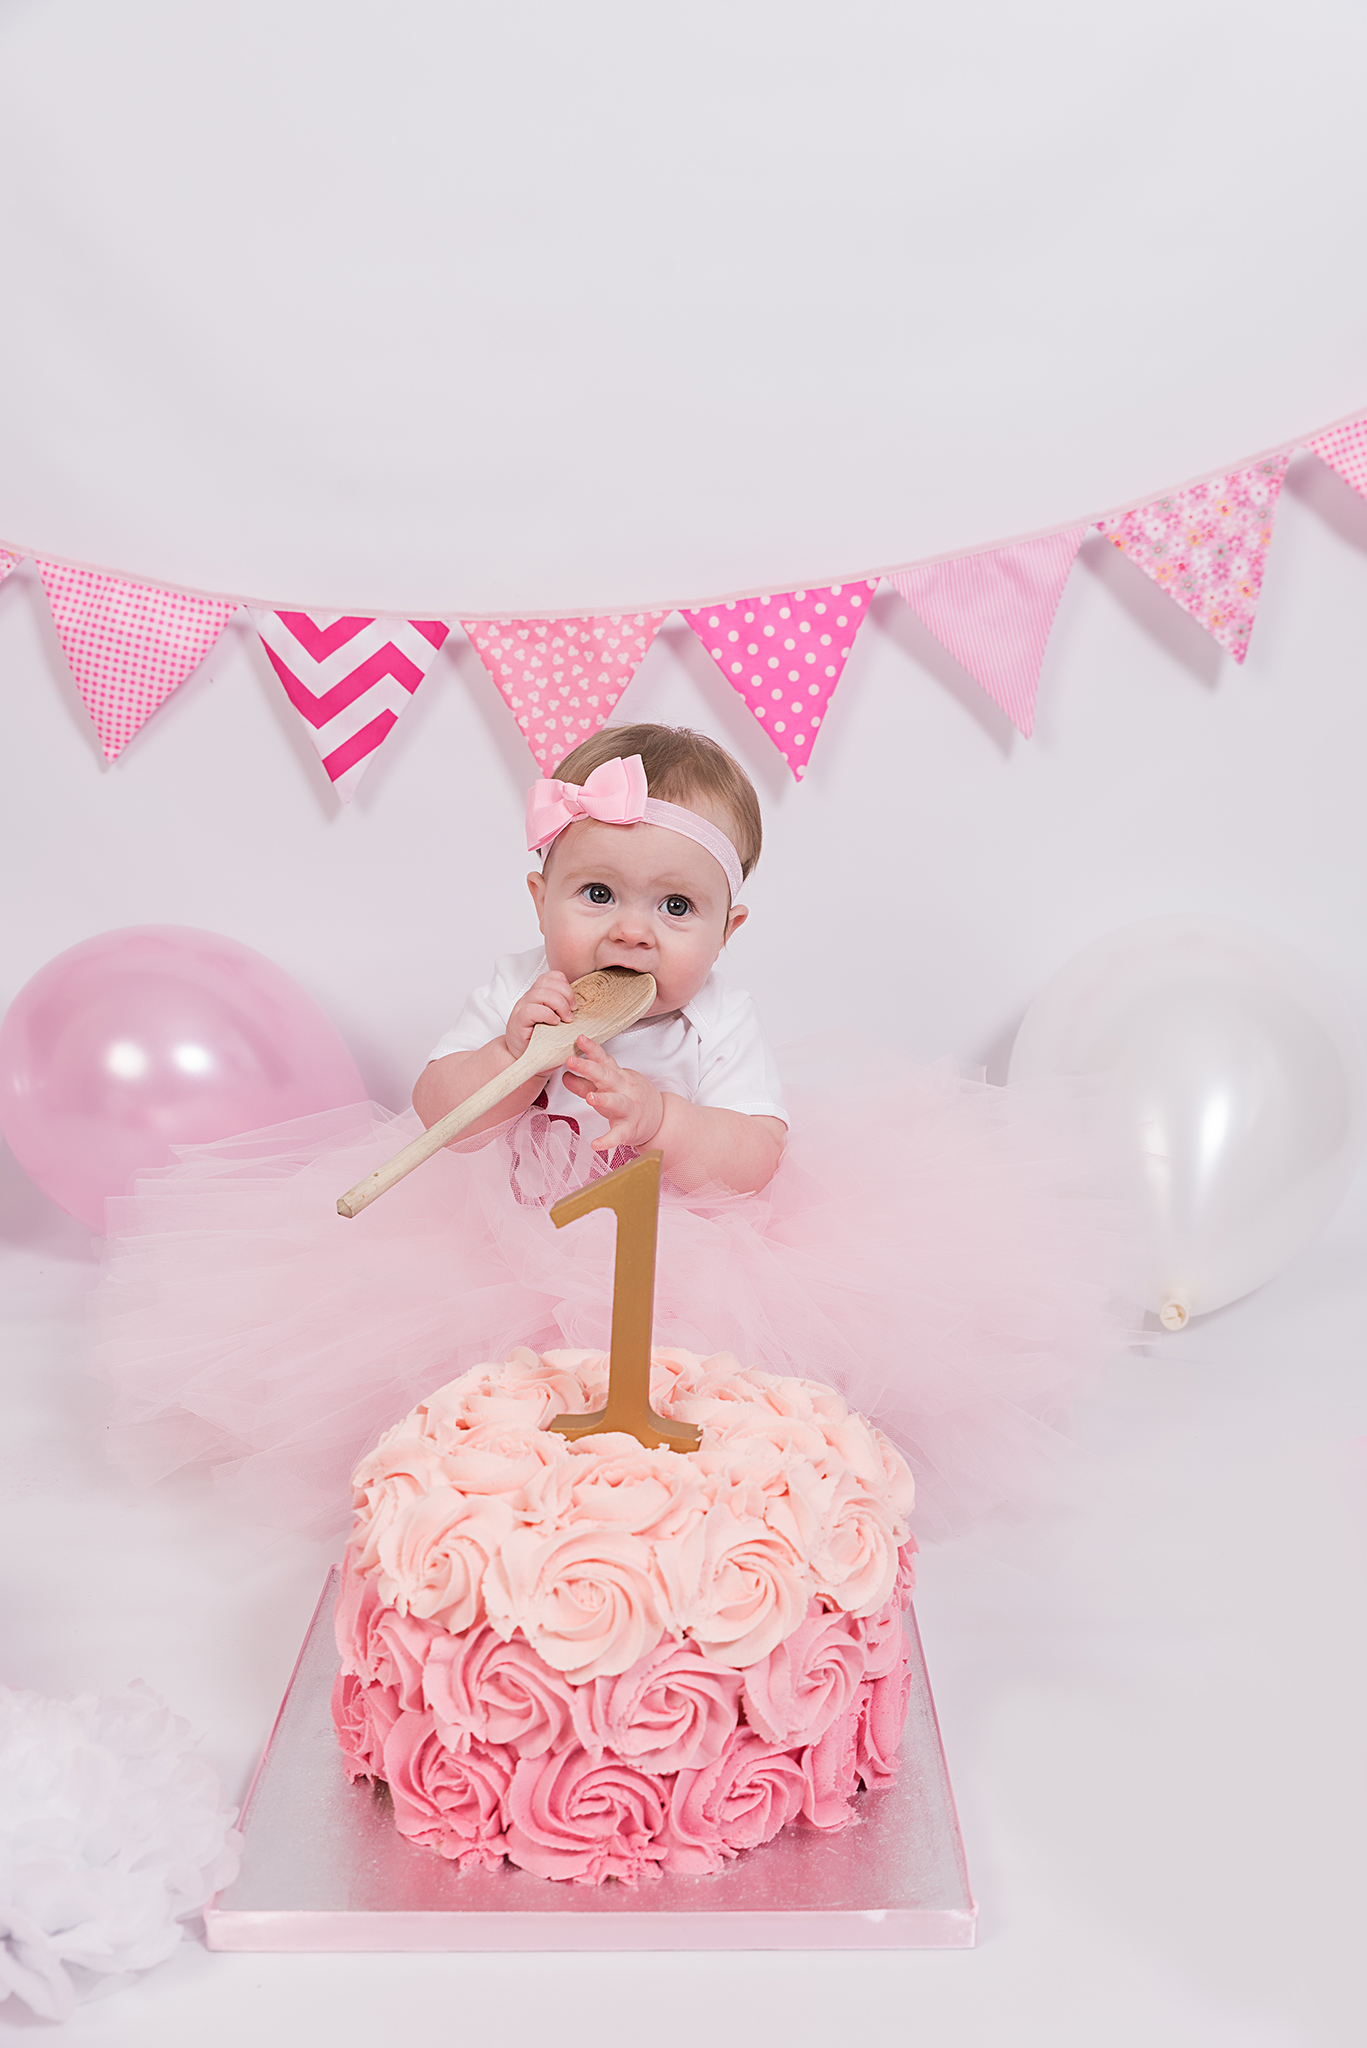 388dd2bd2 Cake smash photographer Crawley. girl sitting down with a wooden spoon in  her hand and